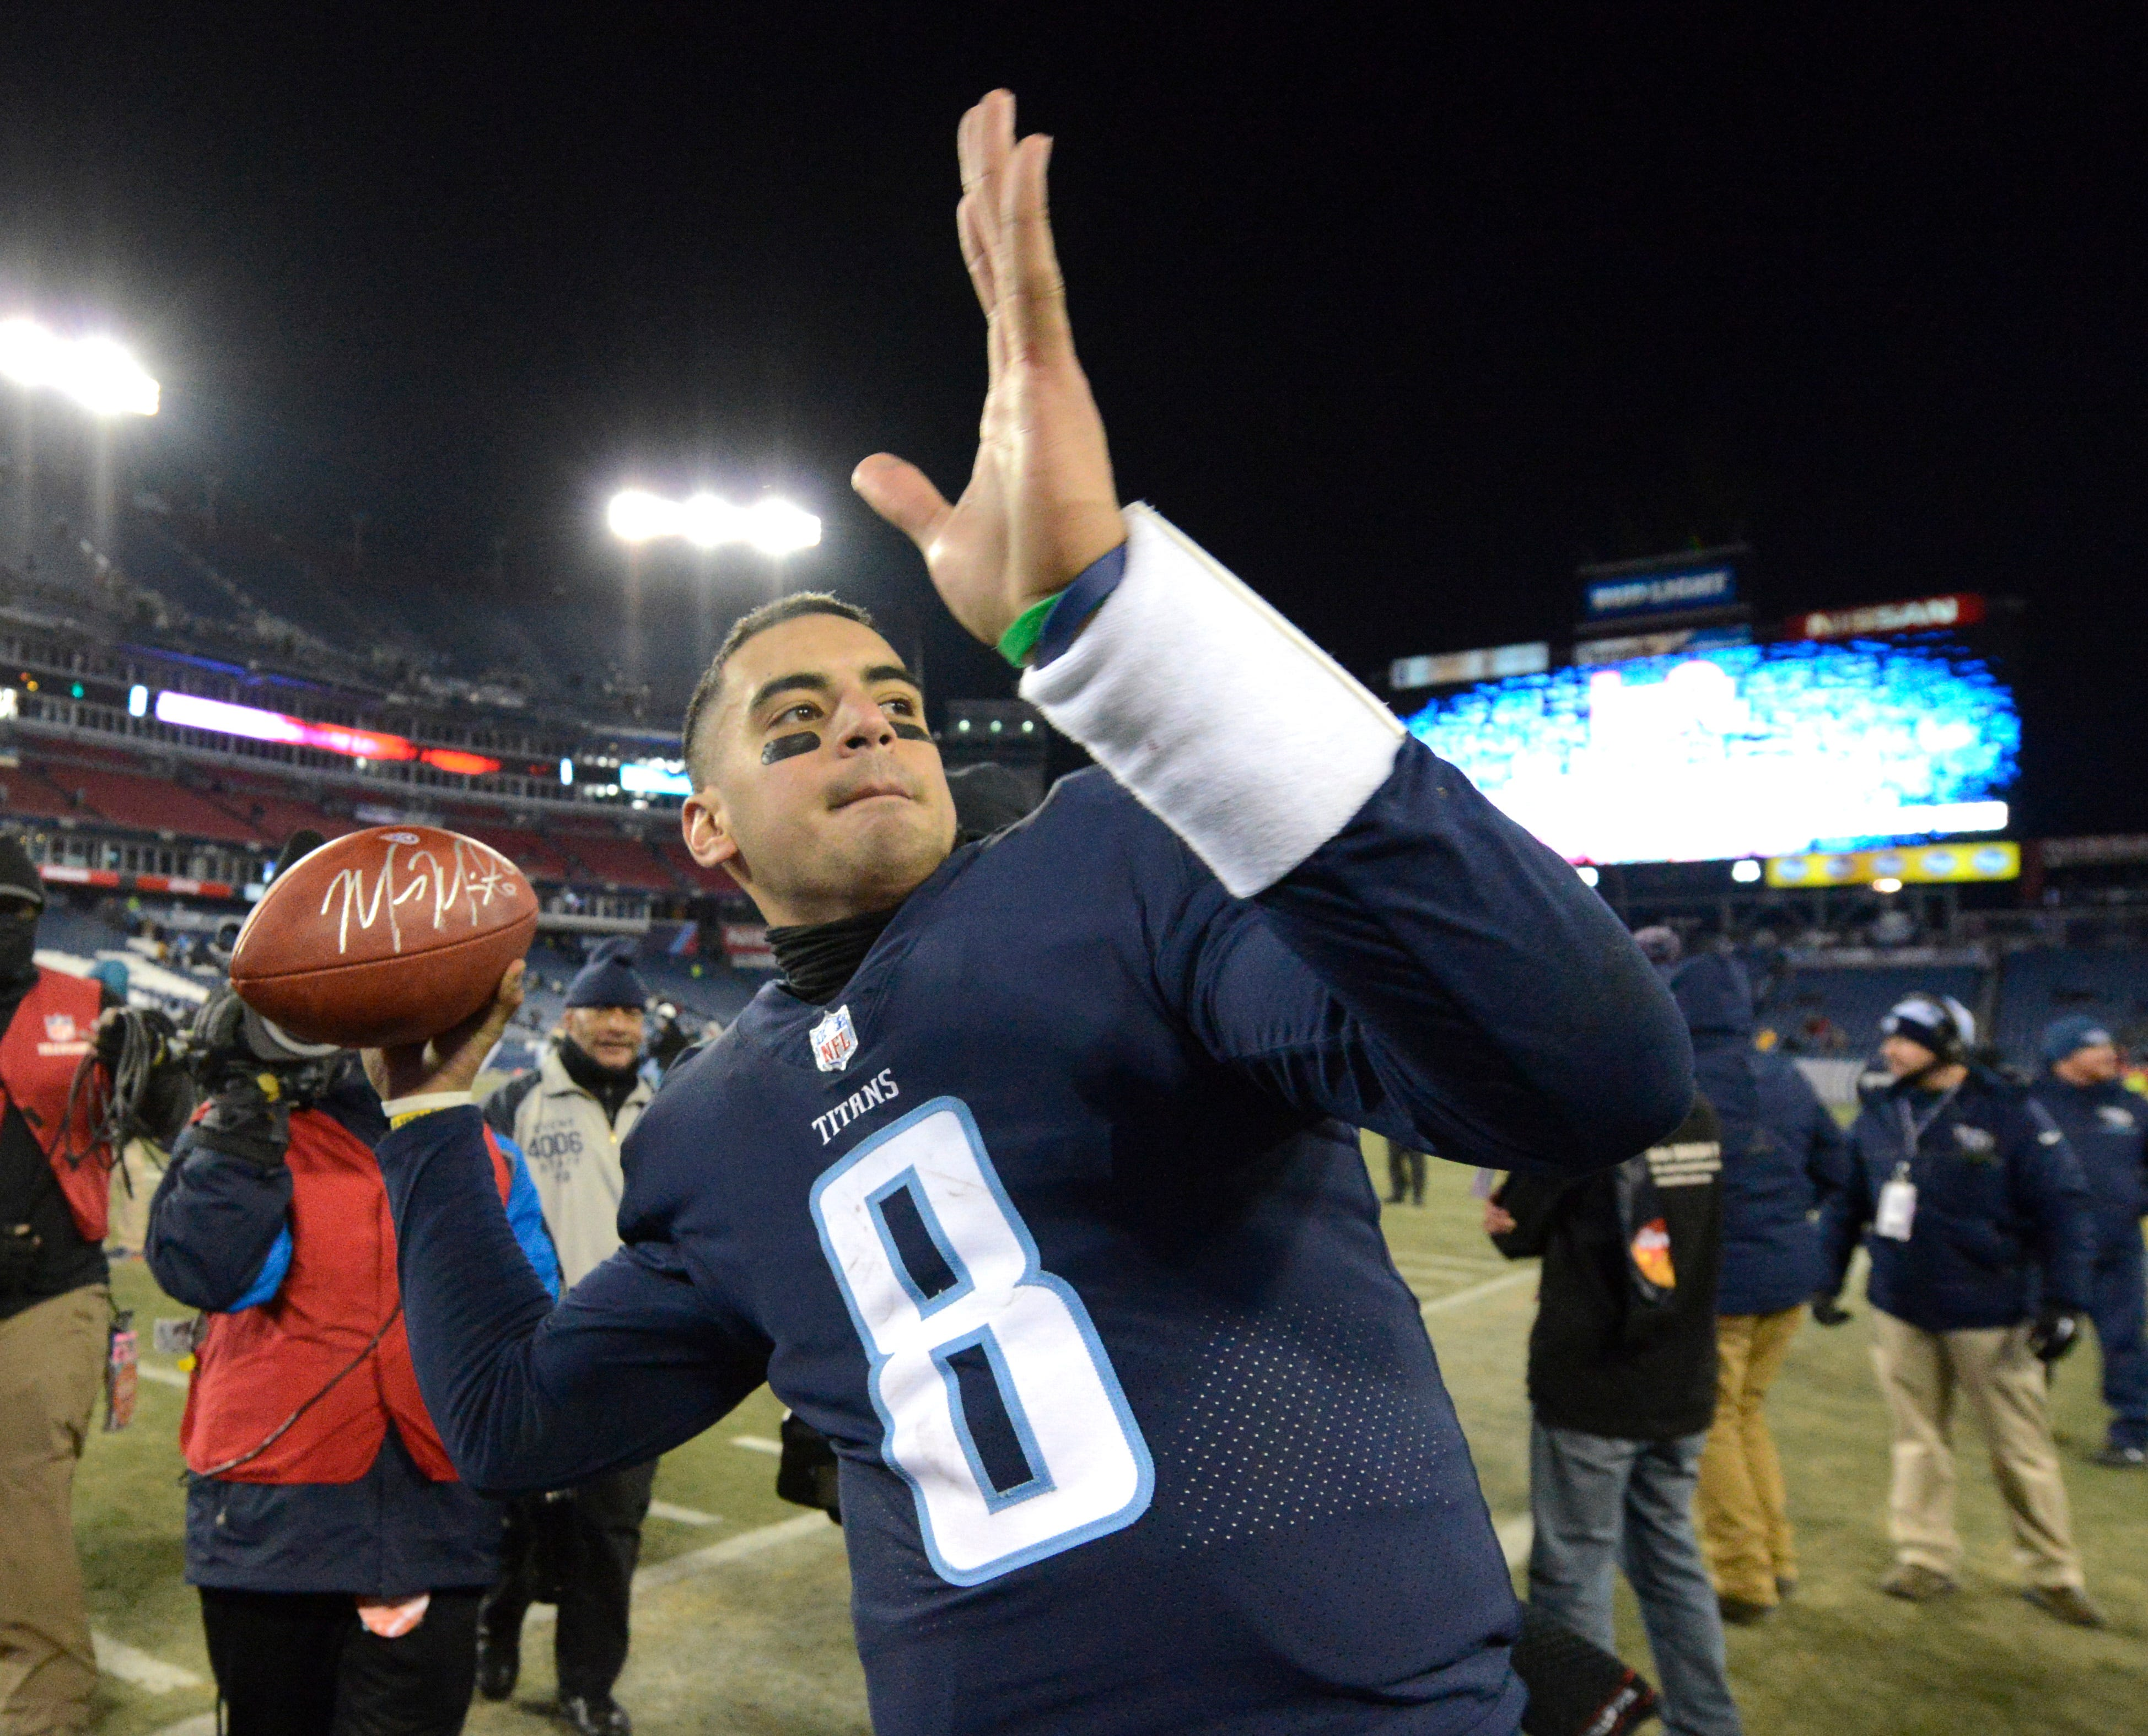 ff515234 http://www.tennessean.com/picture-gallery/sports/nfl/titans/2014/01/25 ...